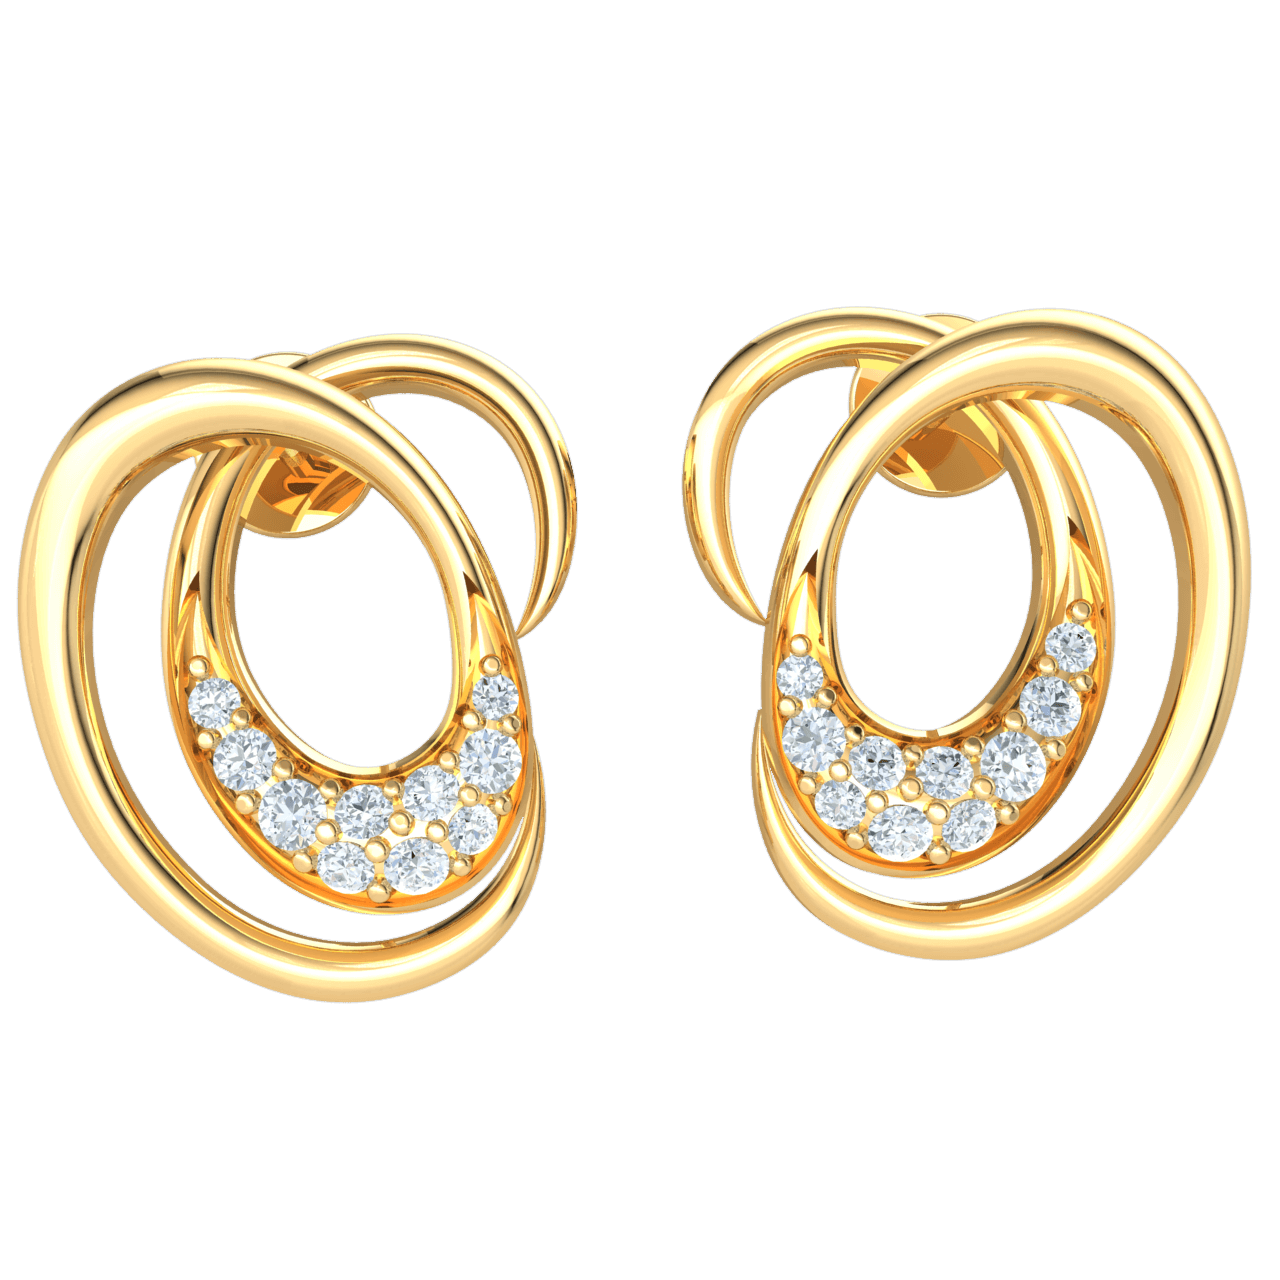 0.12 Ct GH I1-I2 Graceful Swirling Real Earrrings With Several Stunning White Diamonds in 10 kt Gold